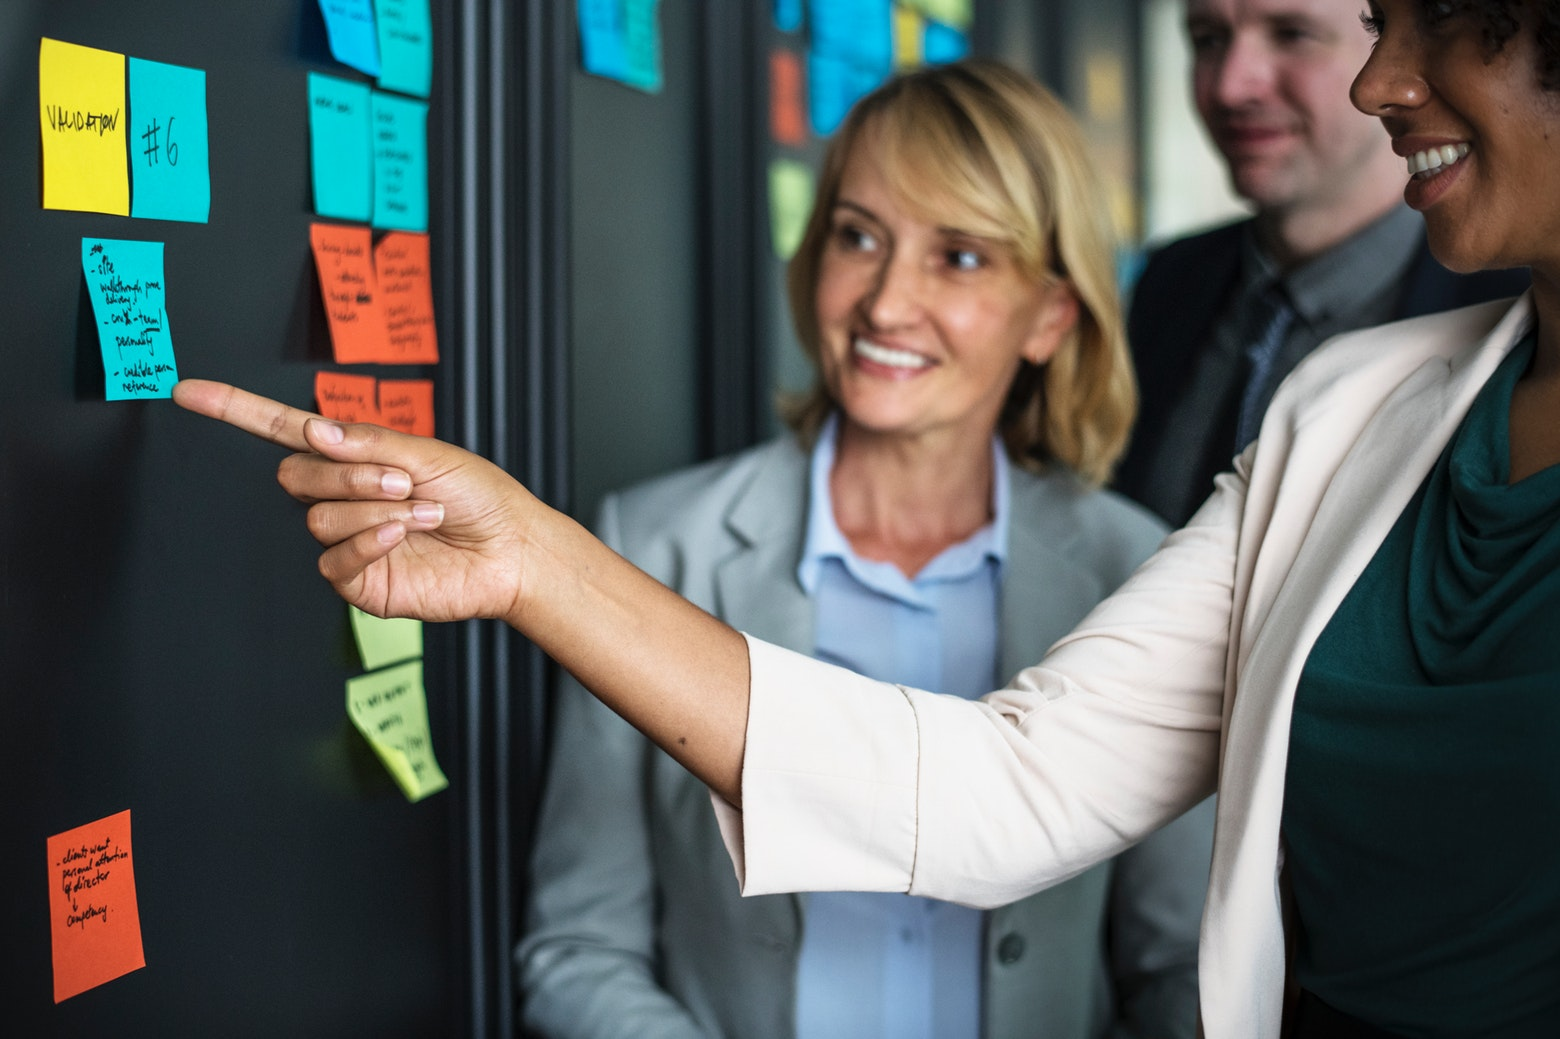 People around a board analysing comments left on sticky notes